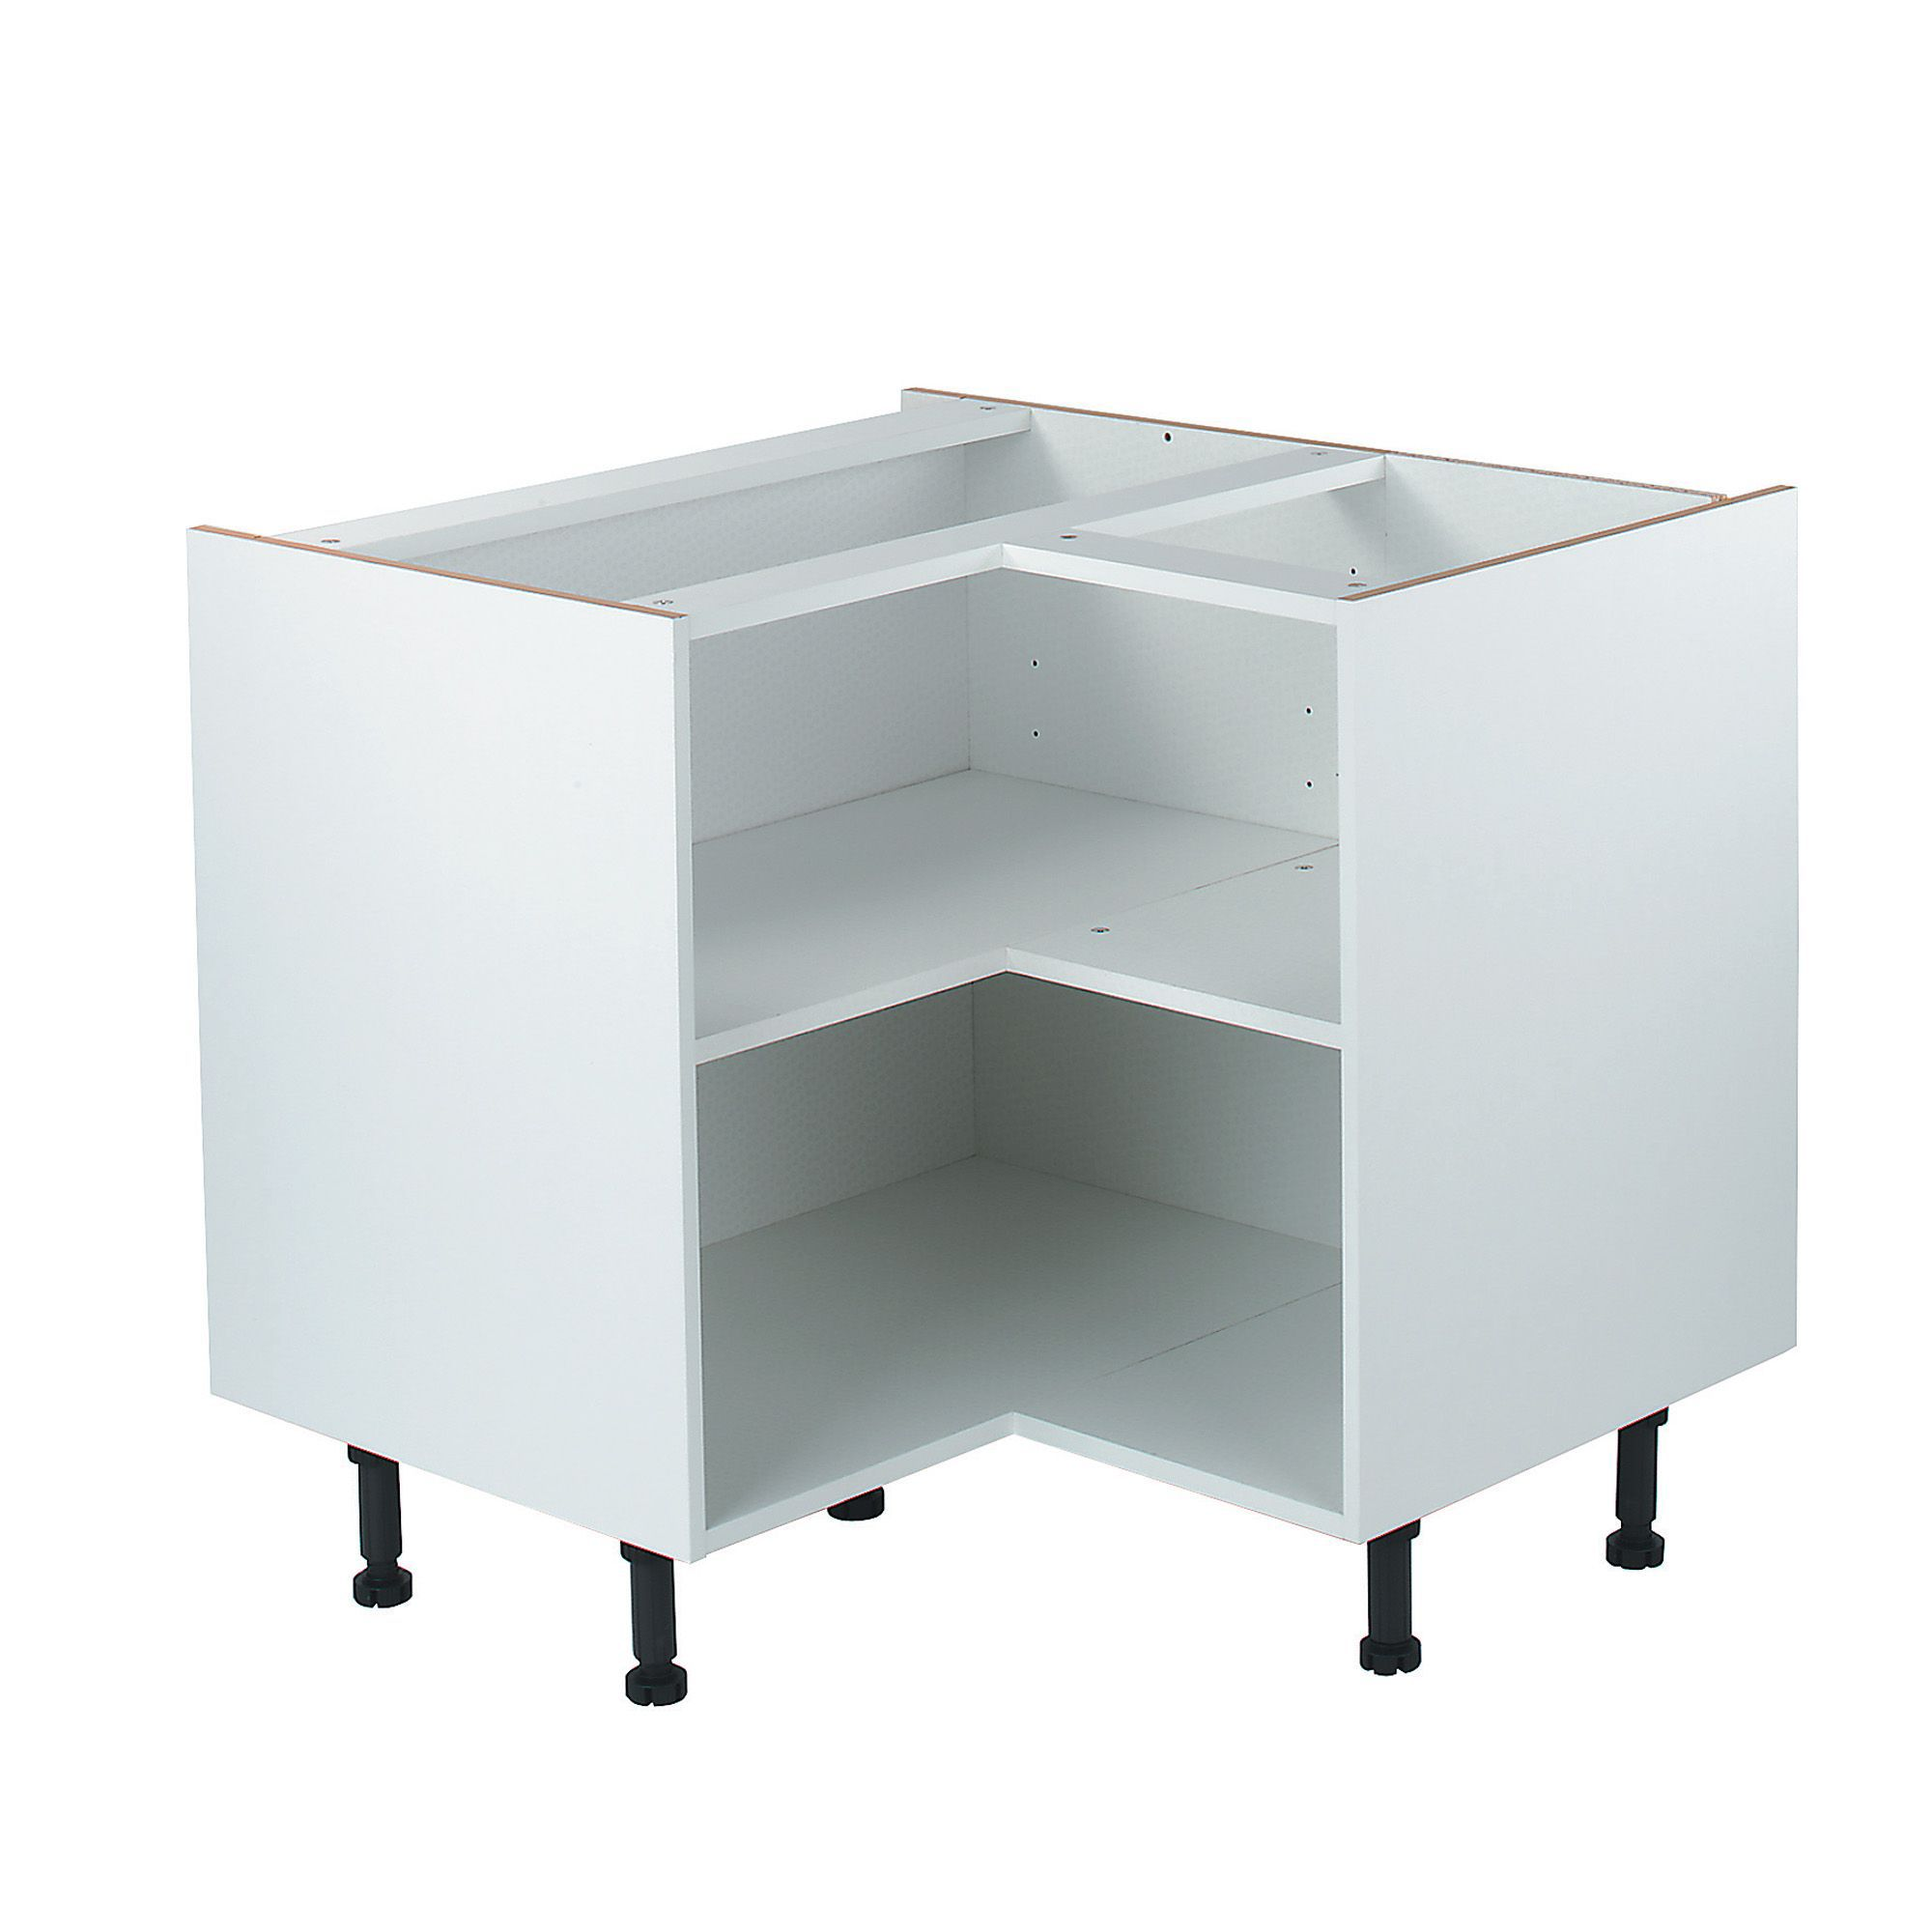 b q kitchen base cabinets it kitchens white corner base cabinet w 925mm 10857